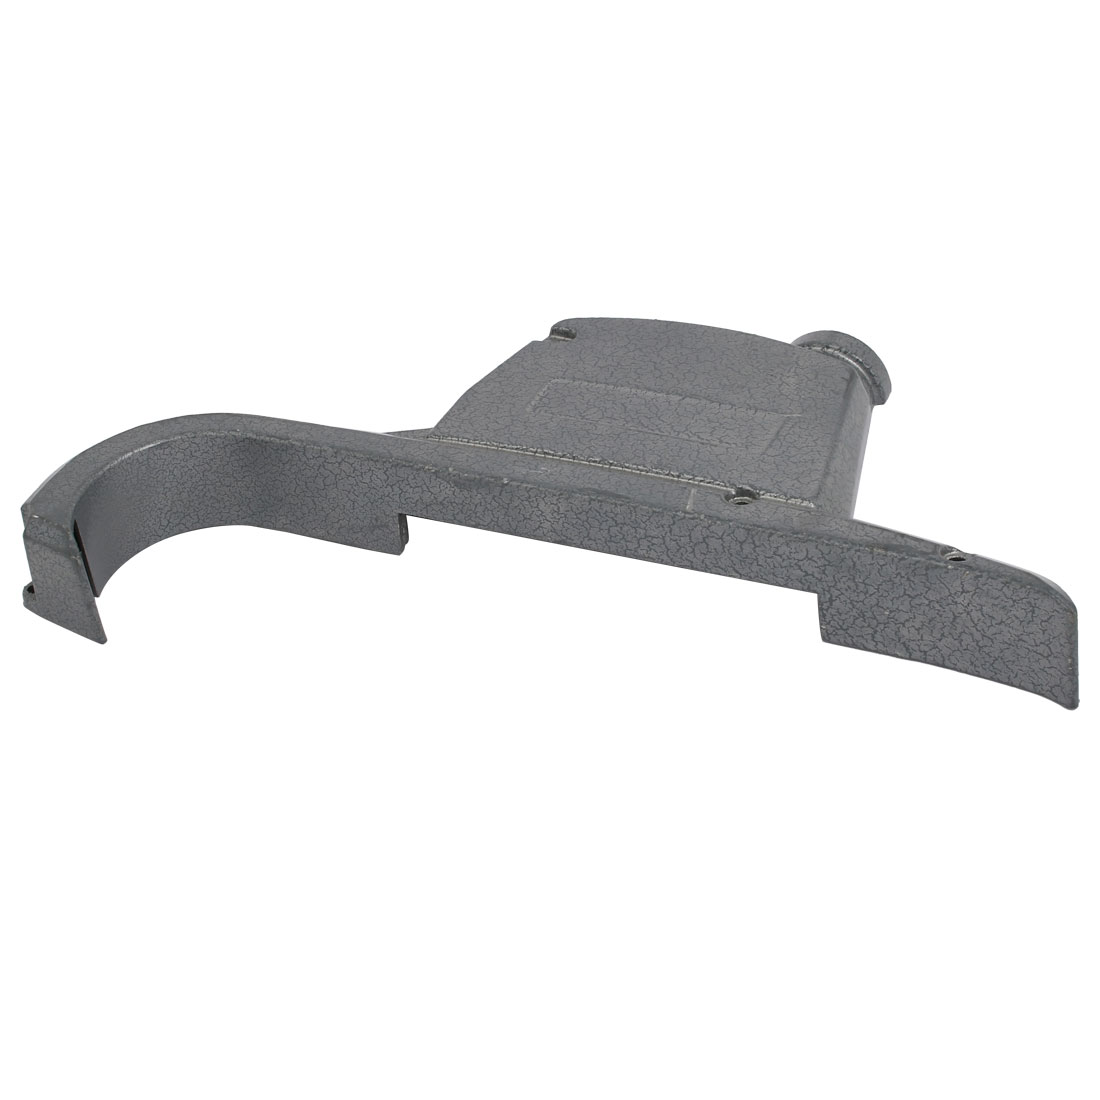 Power Tool Fittings Aluminum Belt Sander Side Cover Gray for  9403